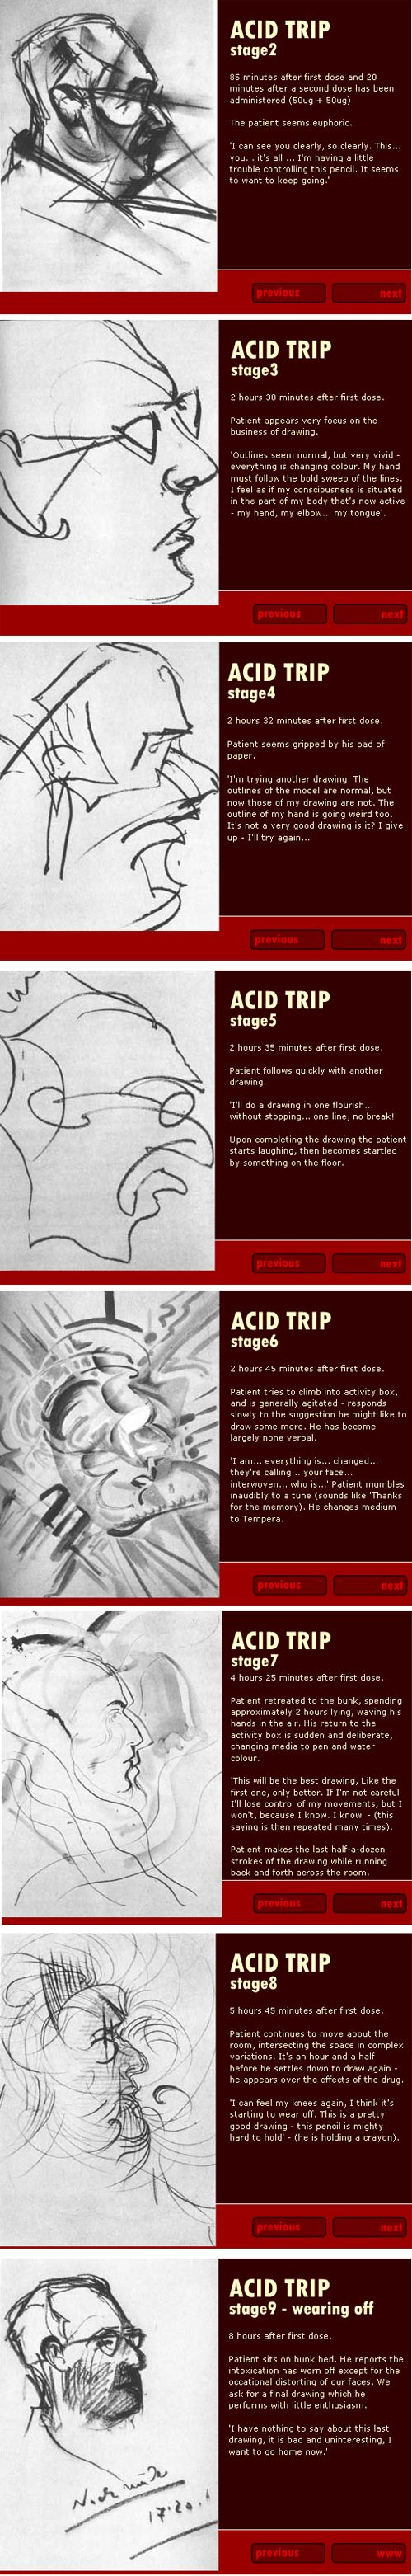 9 stages of an acid trip. Interesting.